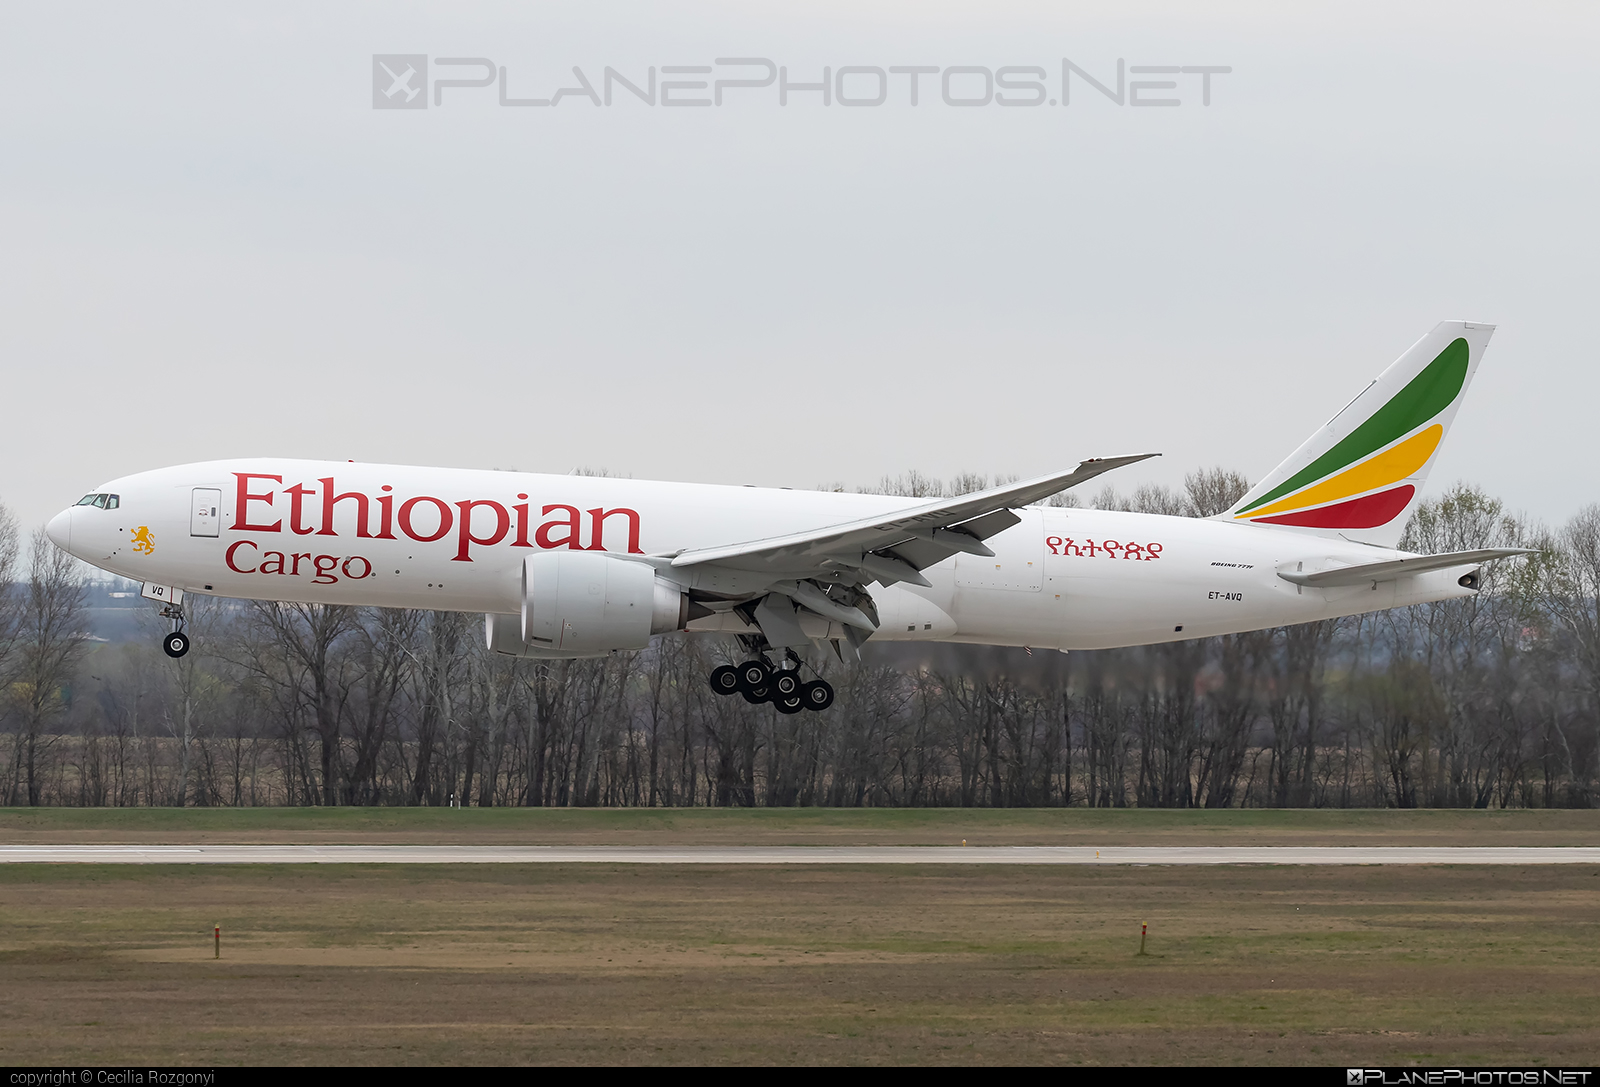 Boeing 777F - ET-AVQ operated by Ethiopian Cargo #b777 #b777f #b777freighter #boeing #boeing777 #tripleseven